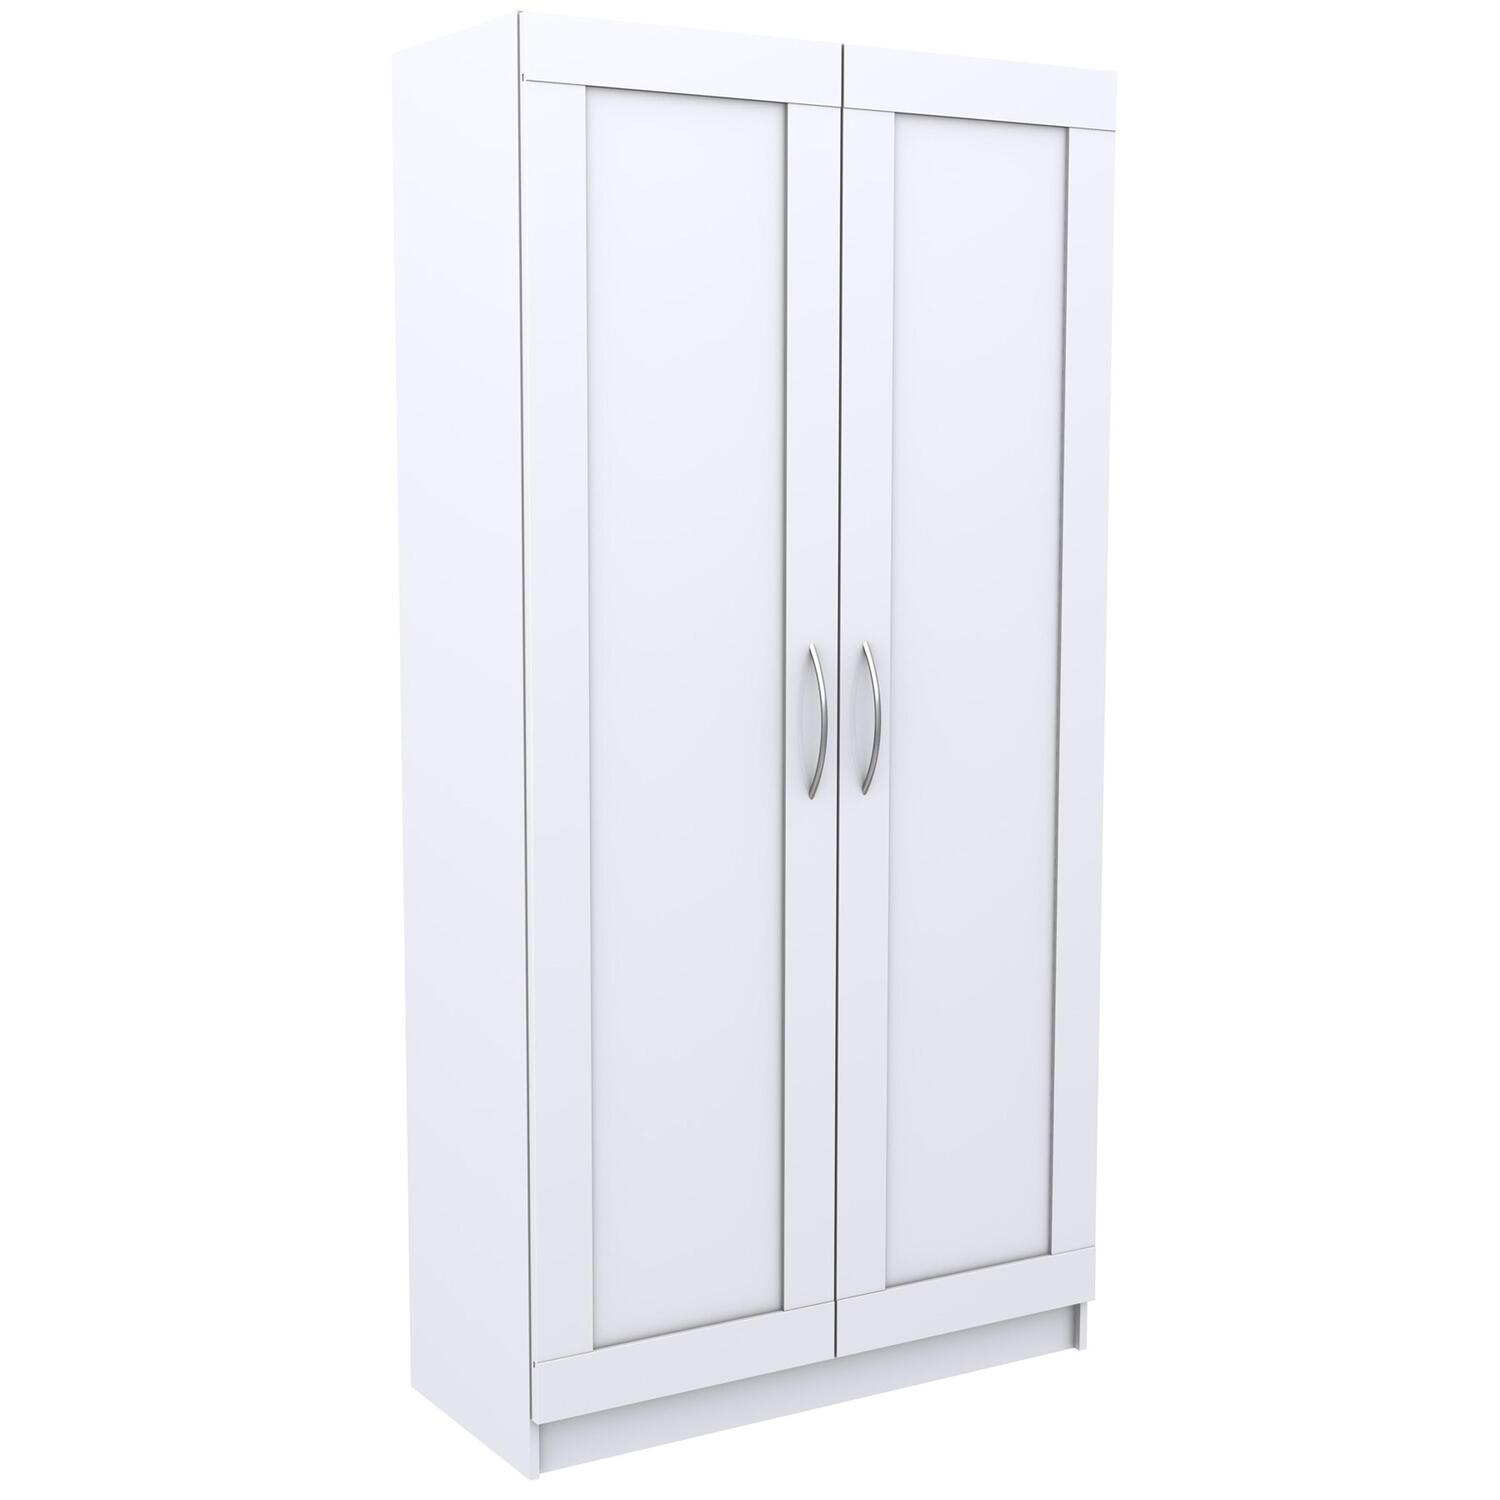 5 Shelf Wide Framed Door Storage Cabinet   [ST105701A]